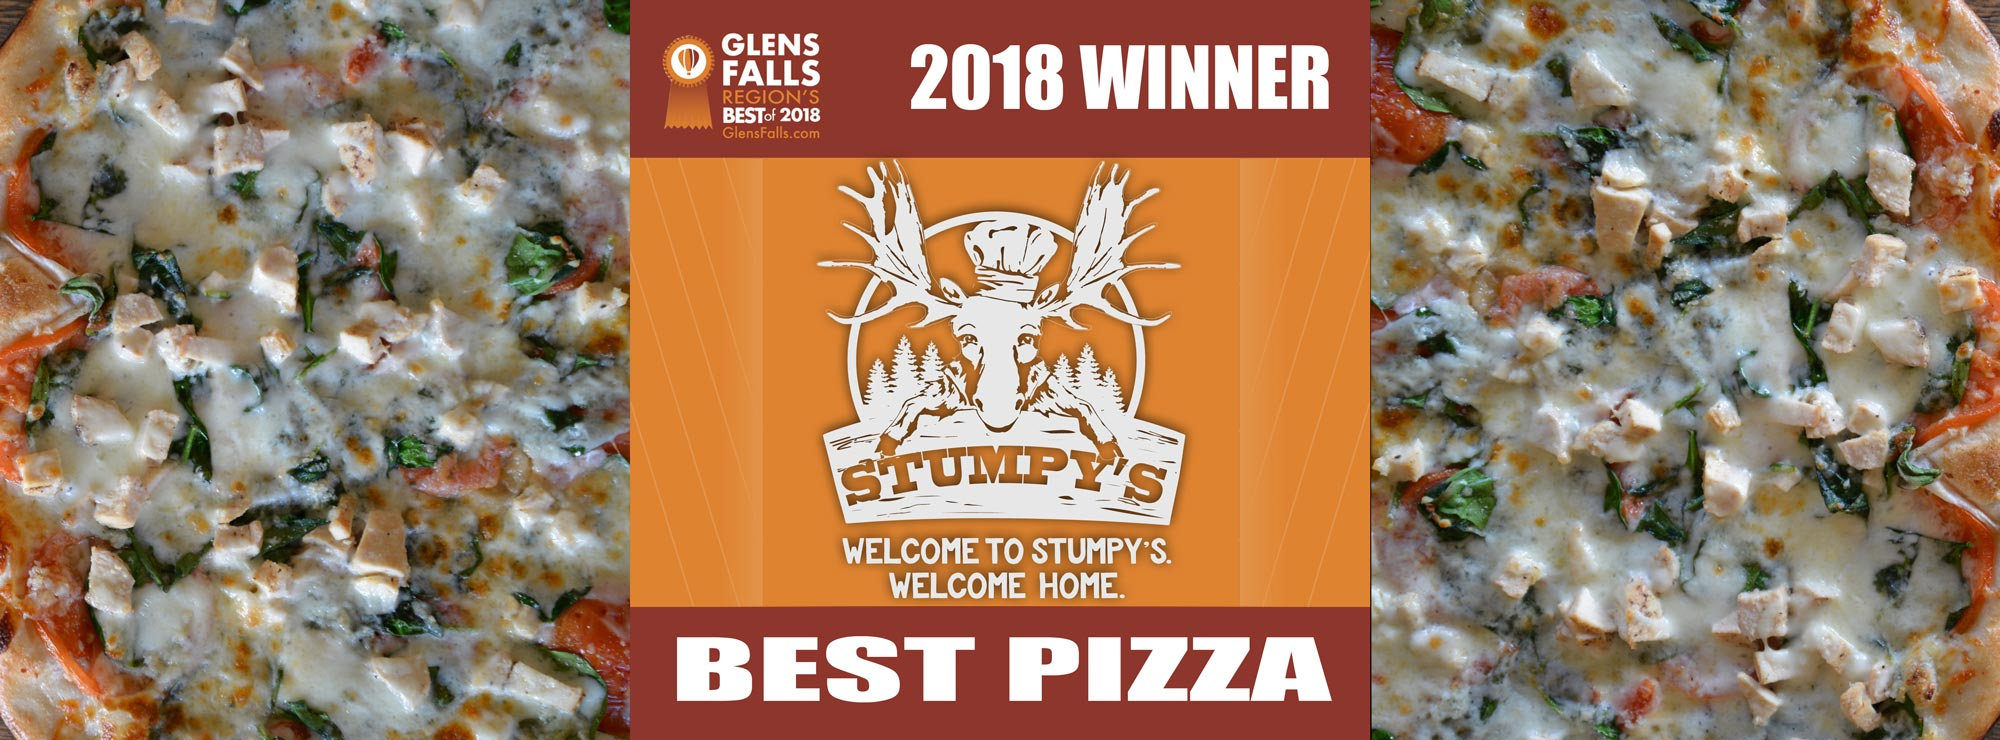 Stumpys Pizzeria